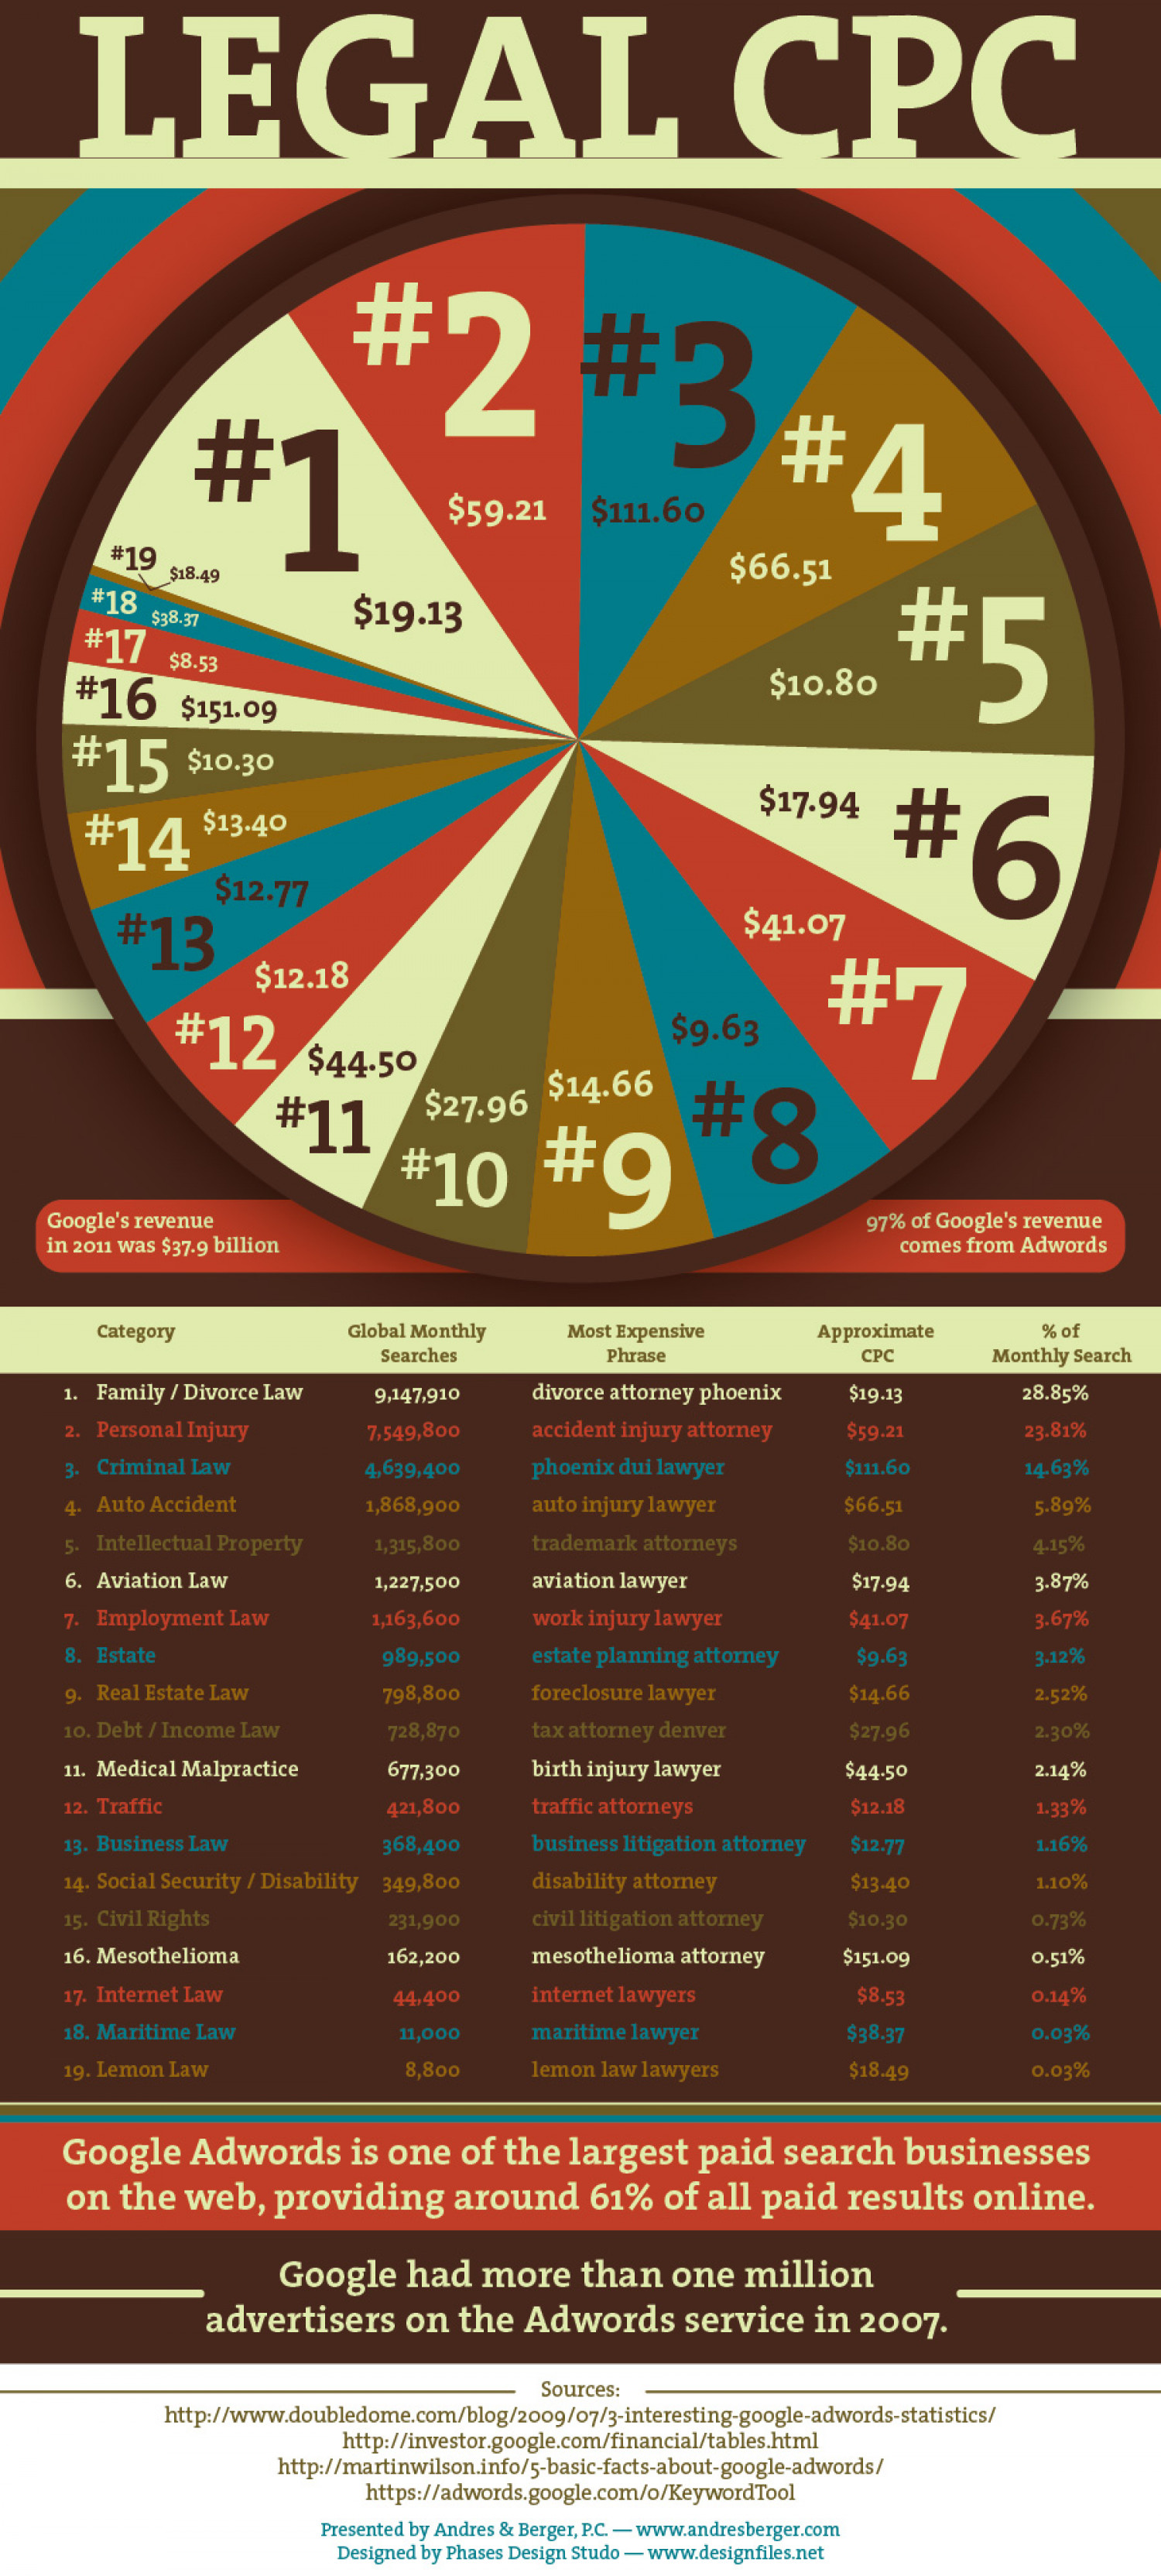 How Do Lawyers Spend Their Money on Advertising? Infographic